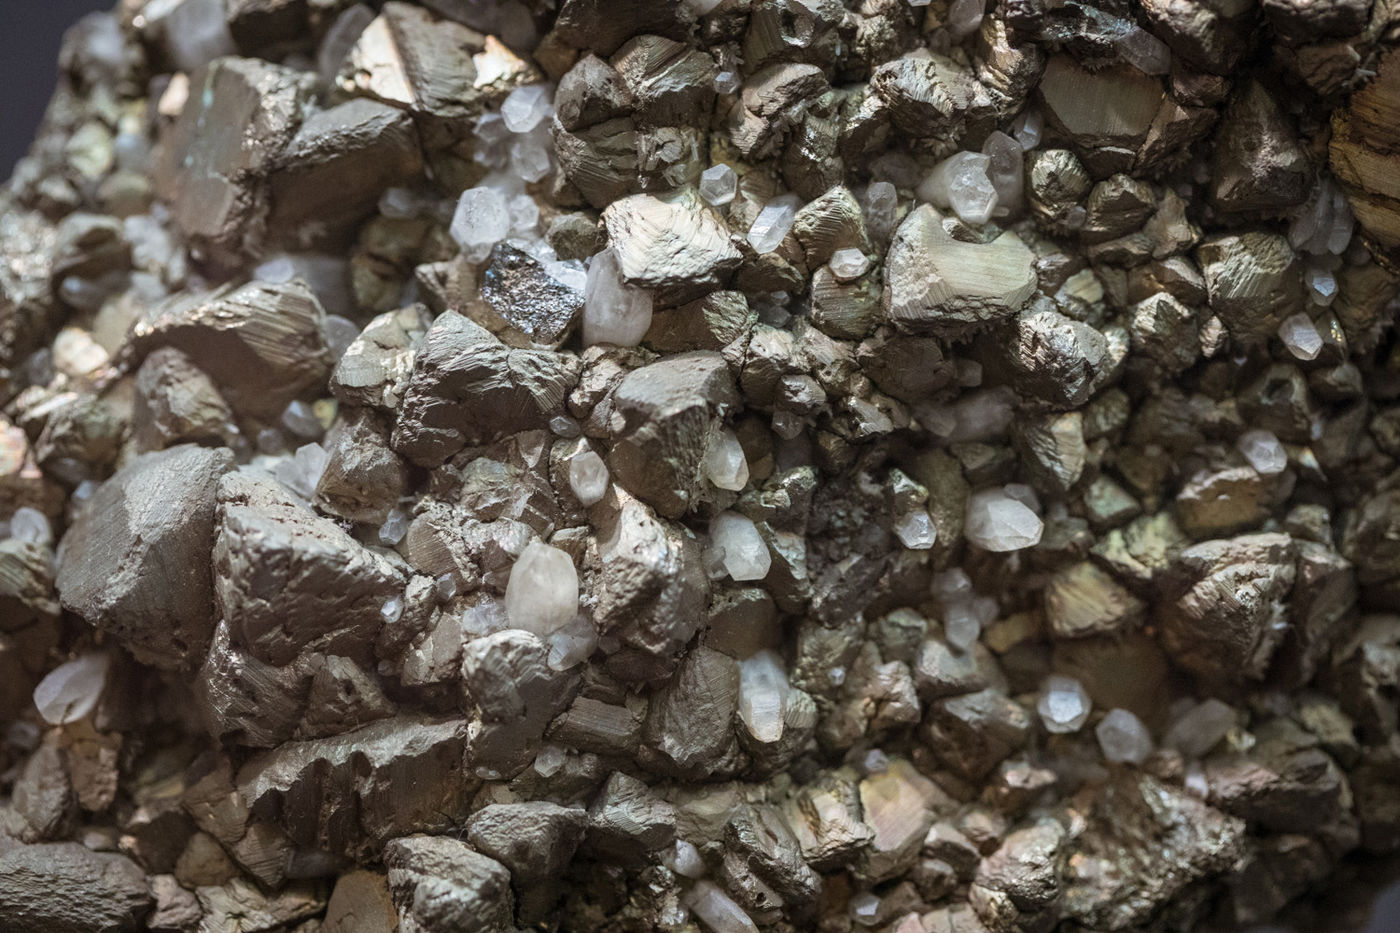 A detailed view of a mineral.